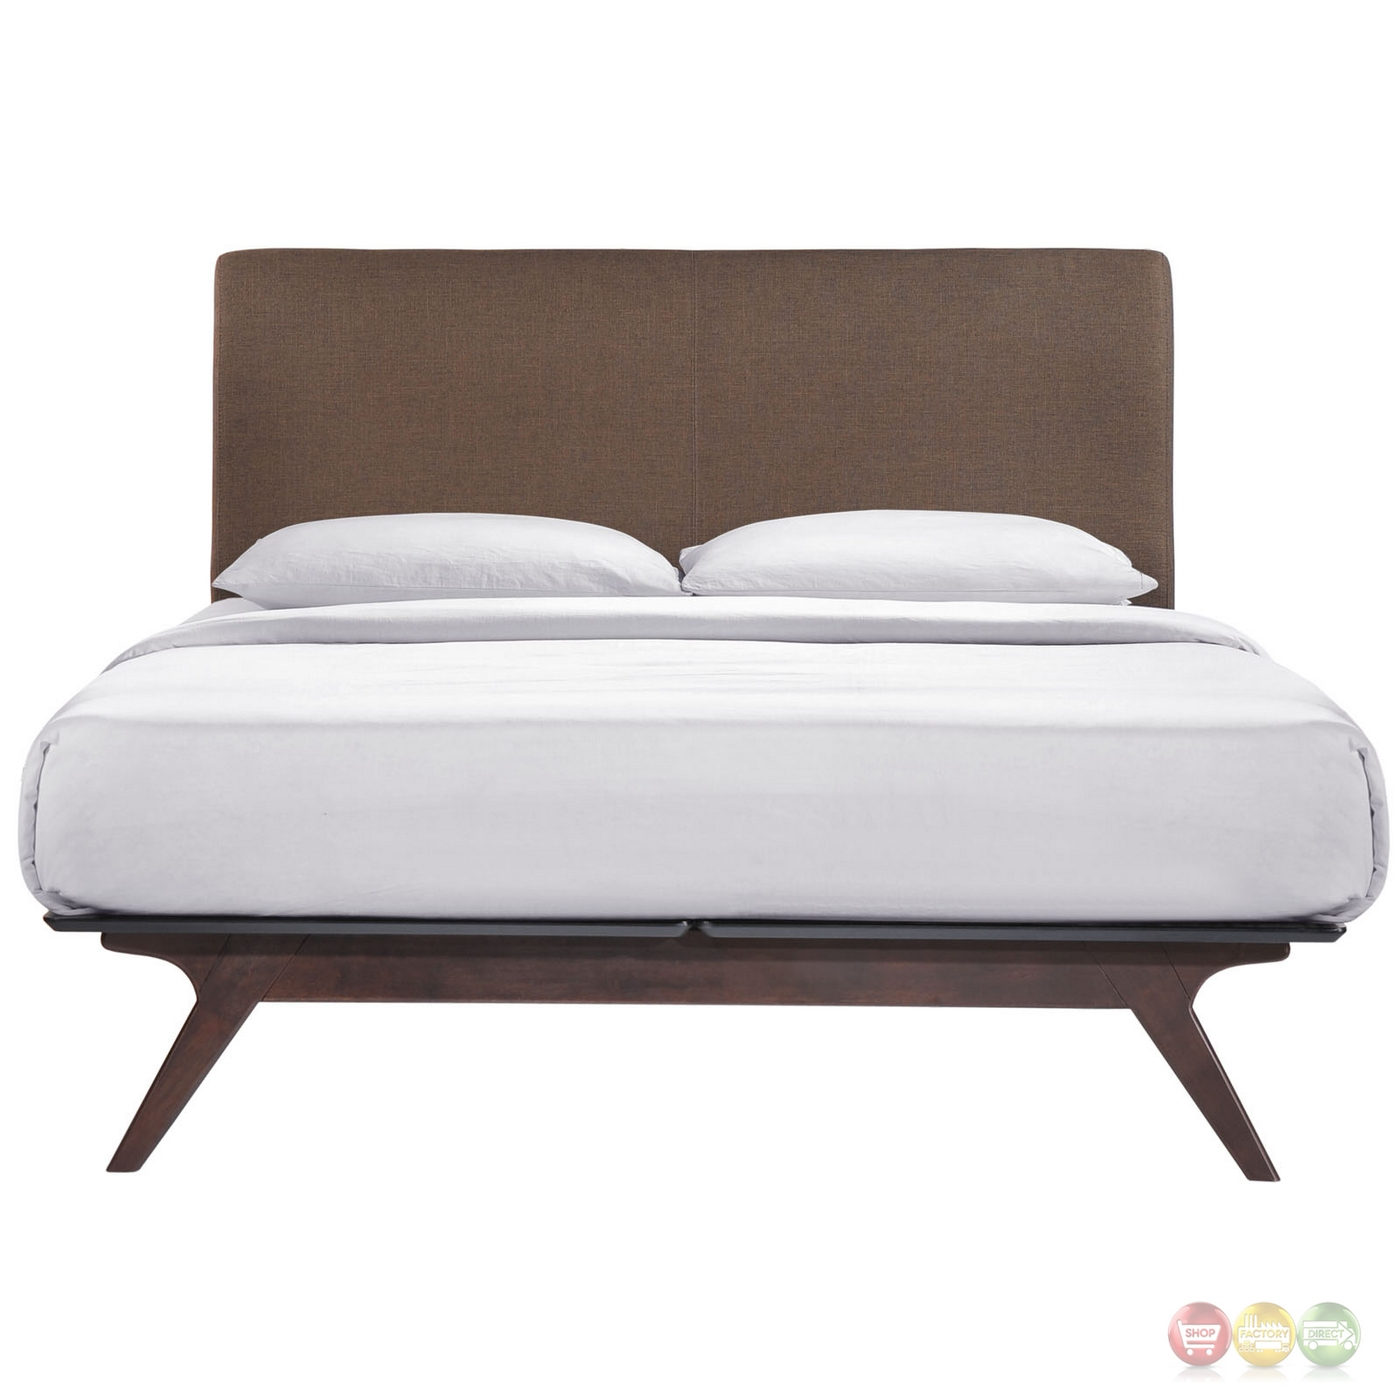 Tracy Mid Century Modern Upholstered Platform Queen Bed